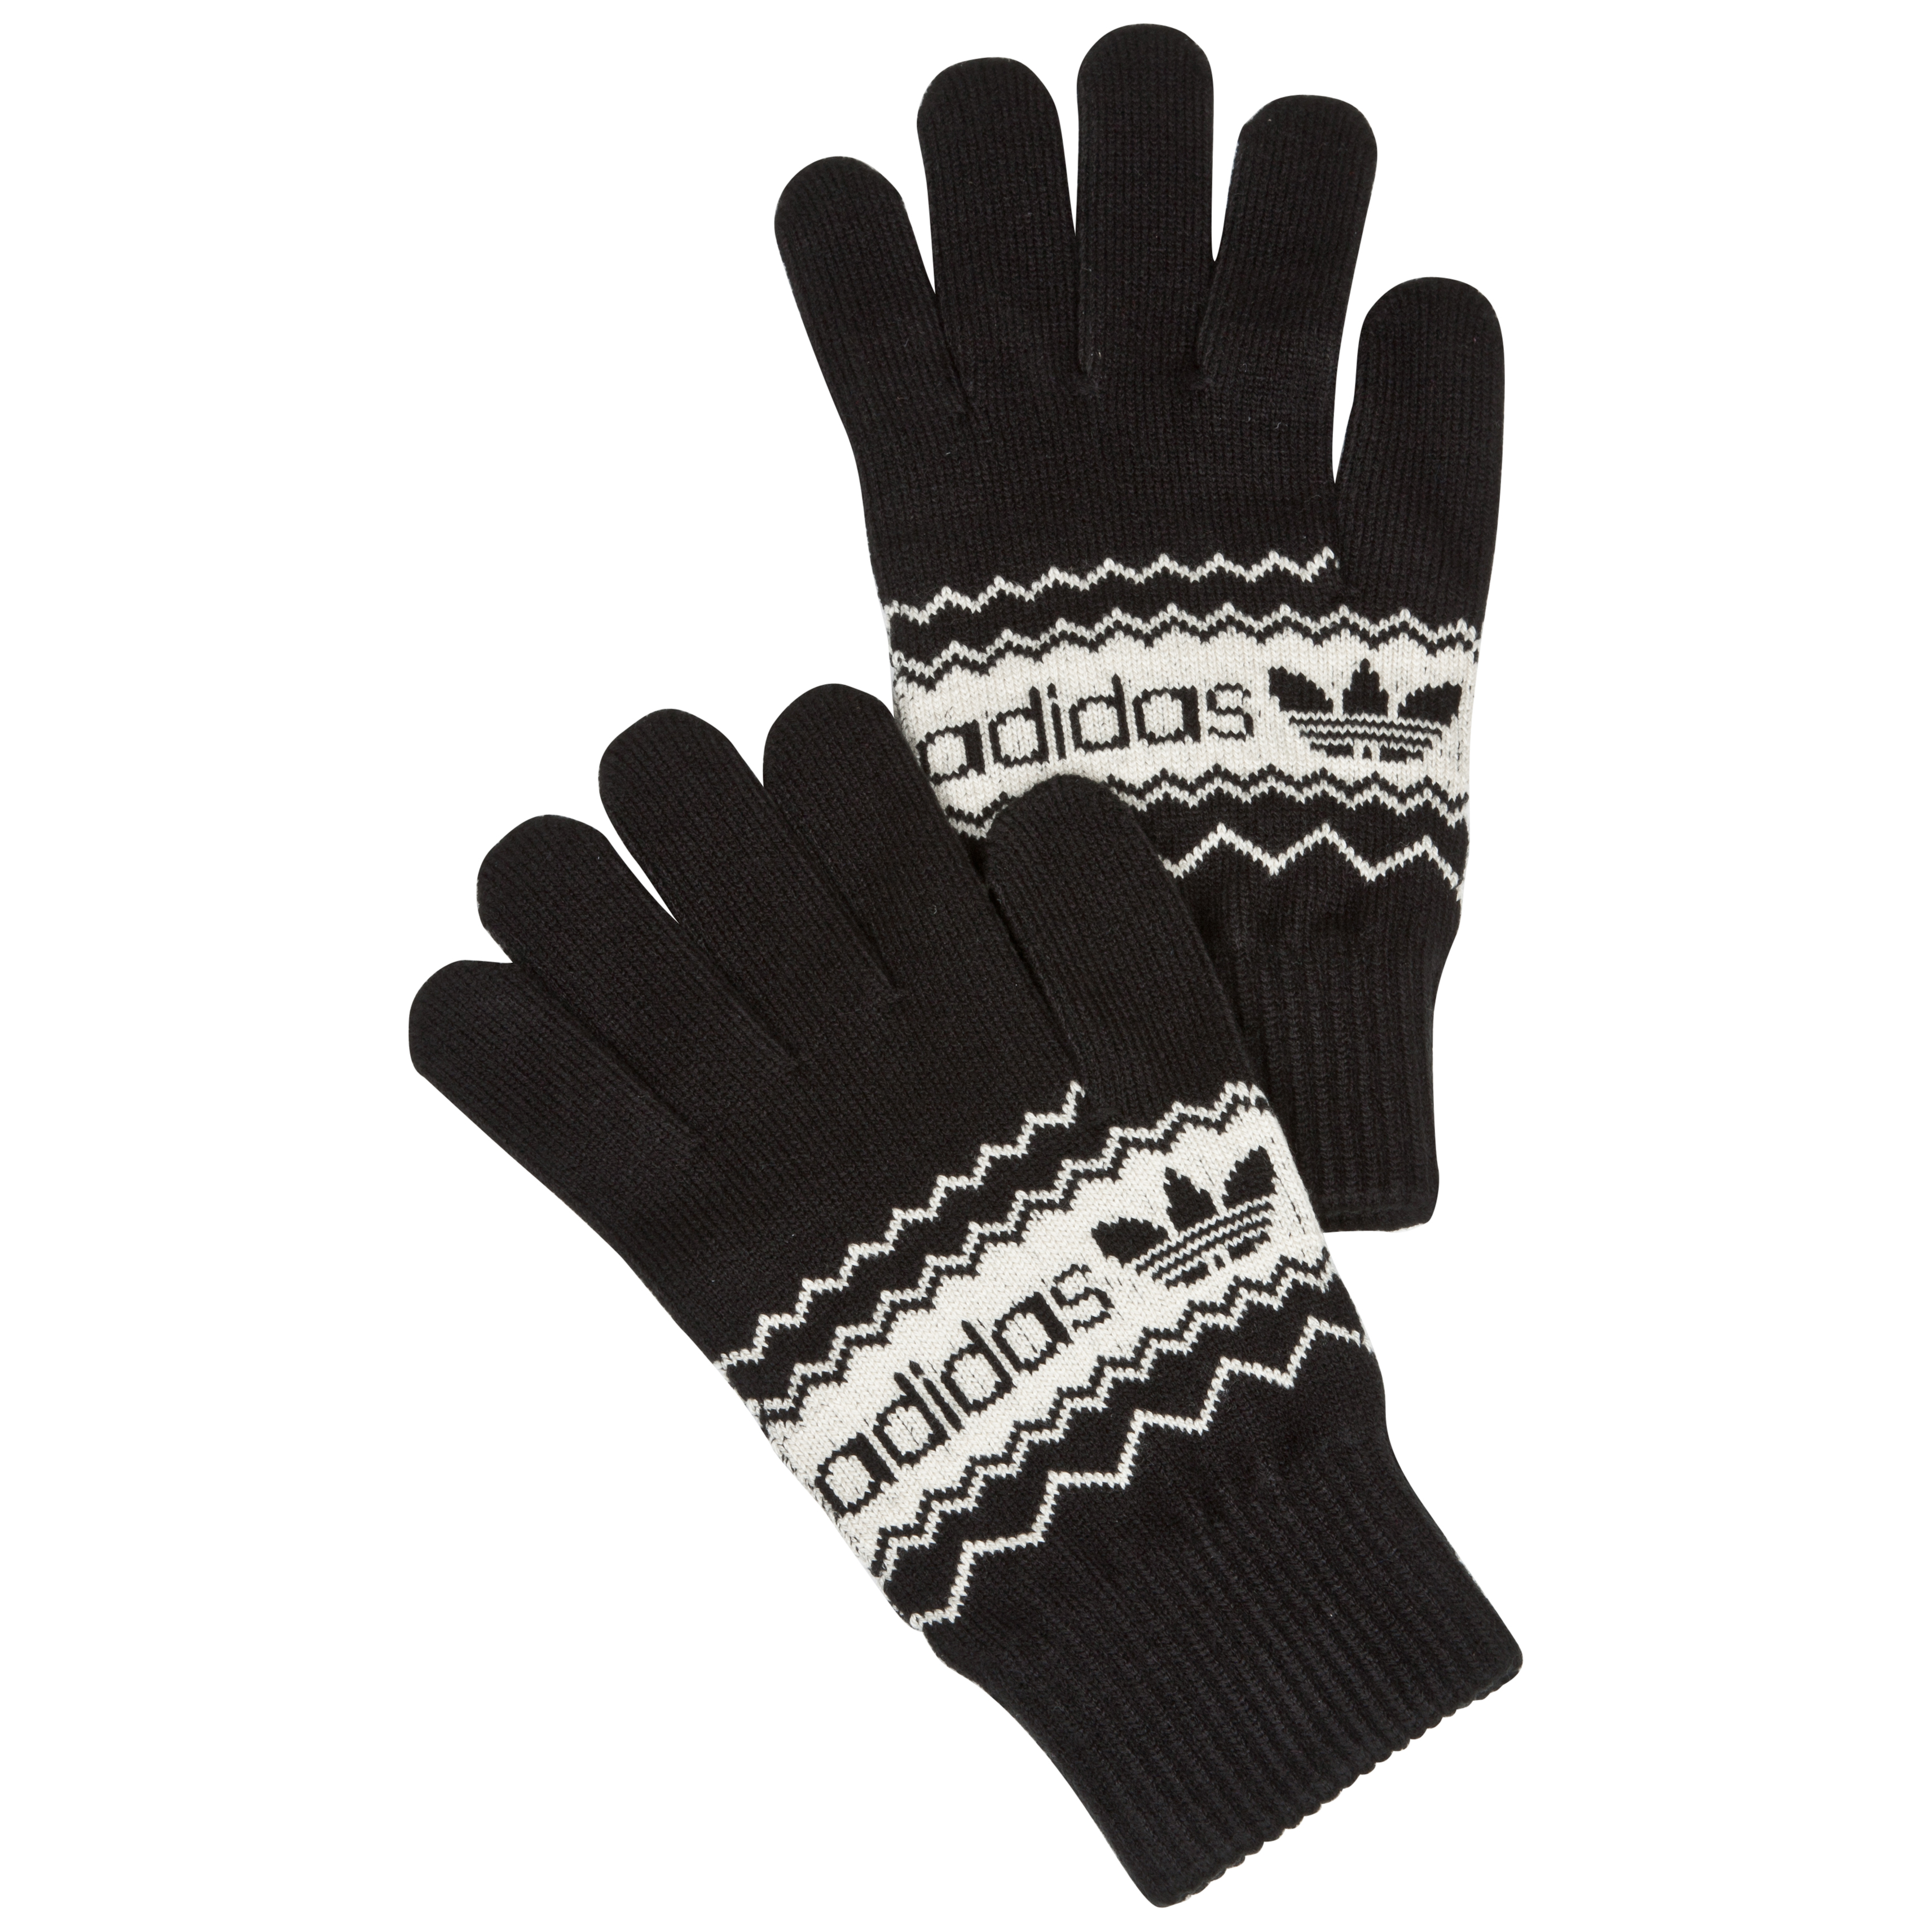 Originals Norwegian Gloves - Black/Bone